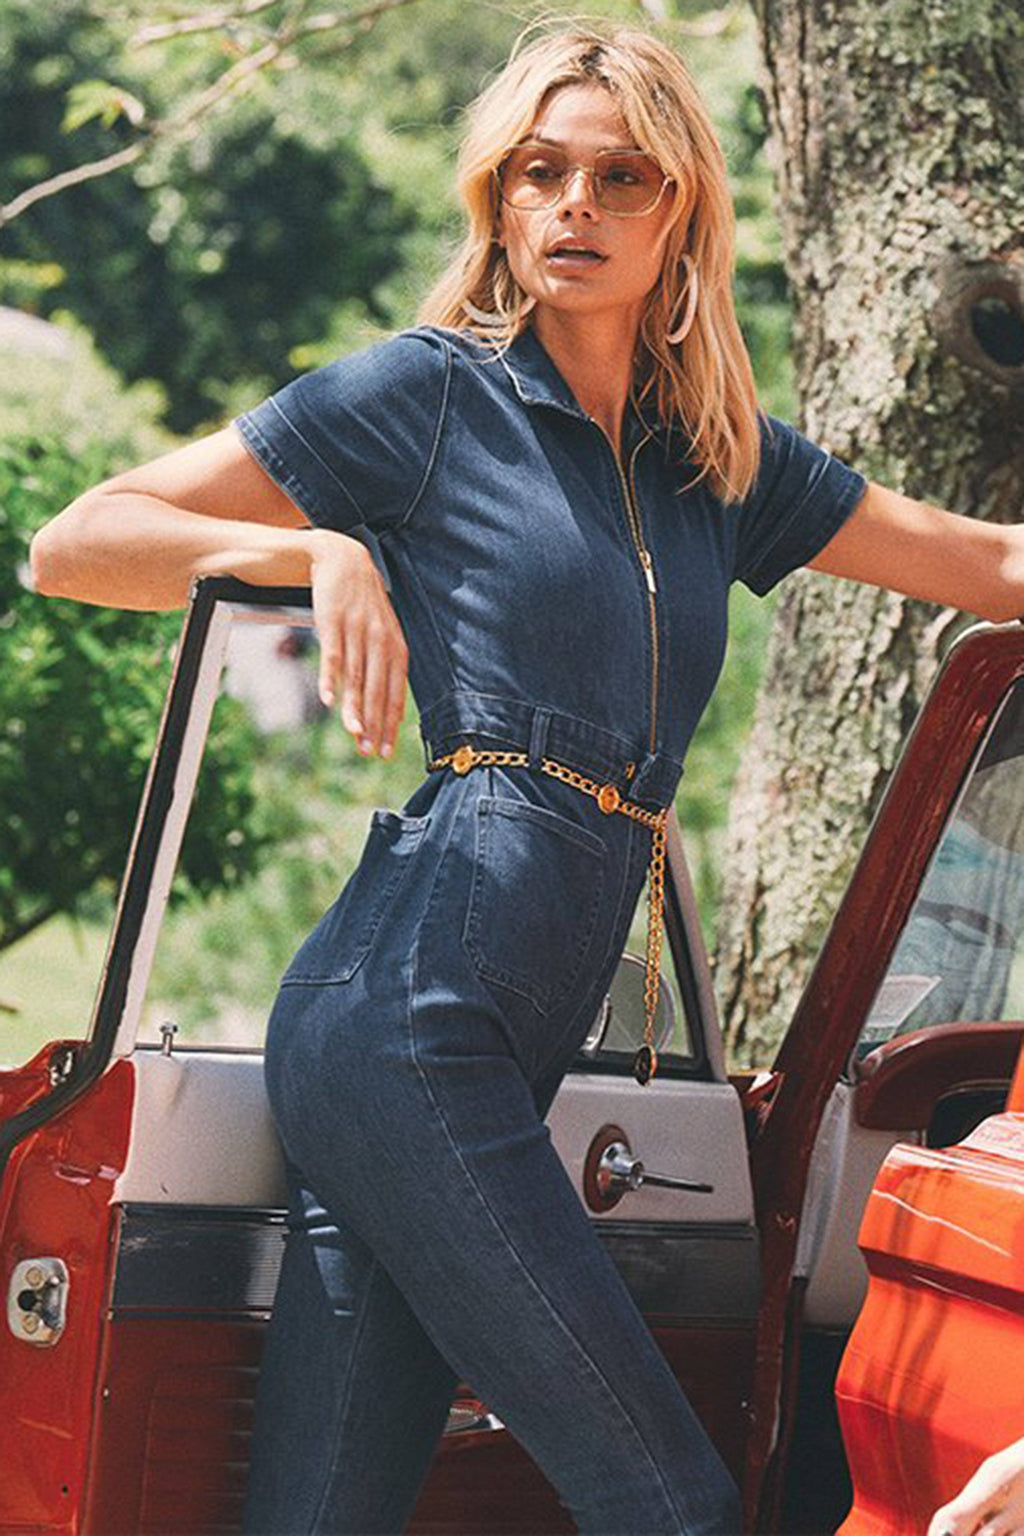 WE WORE WHAT | The Jumpsuit - Dark Wash Denim